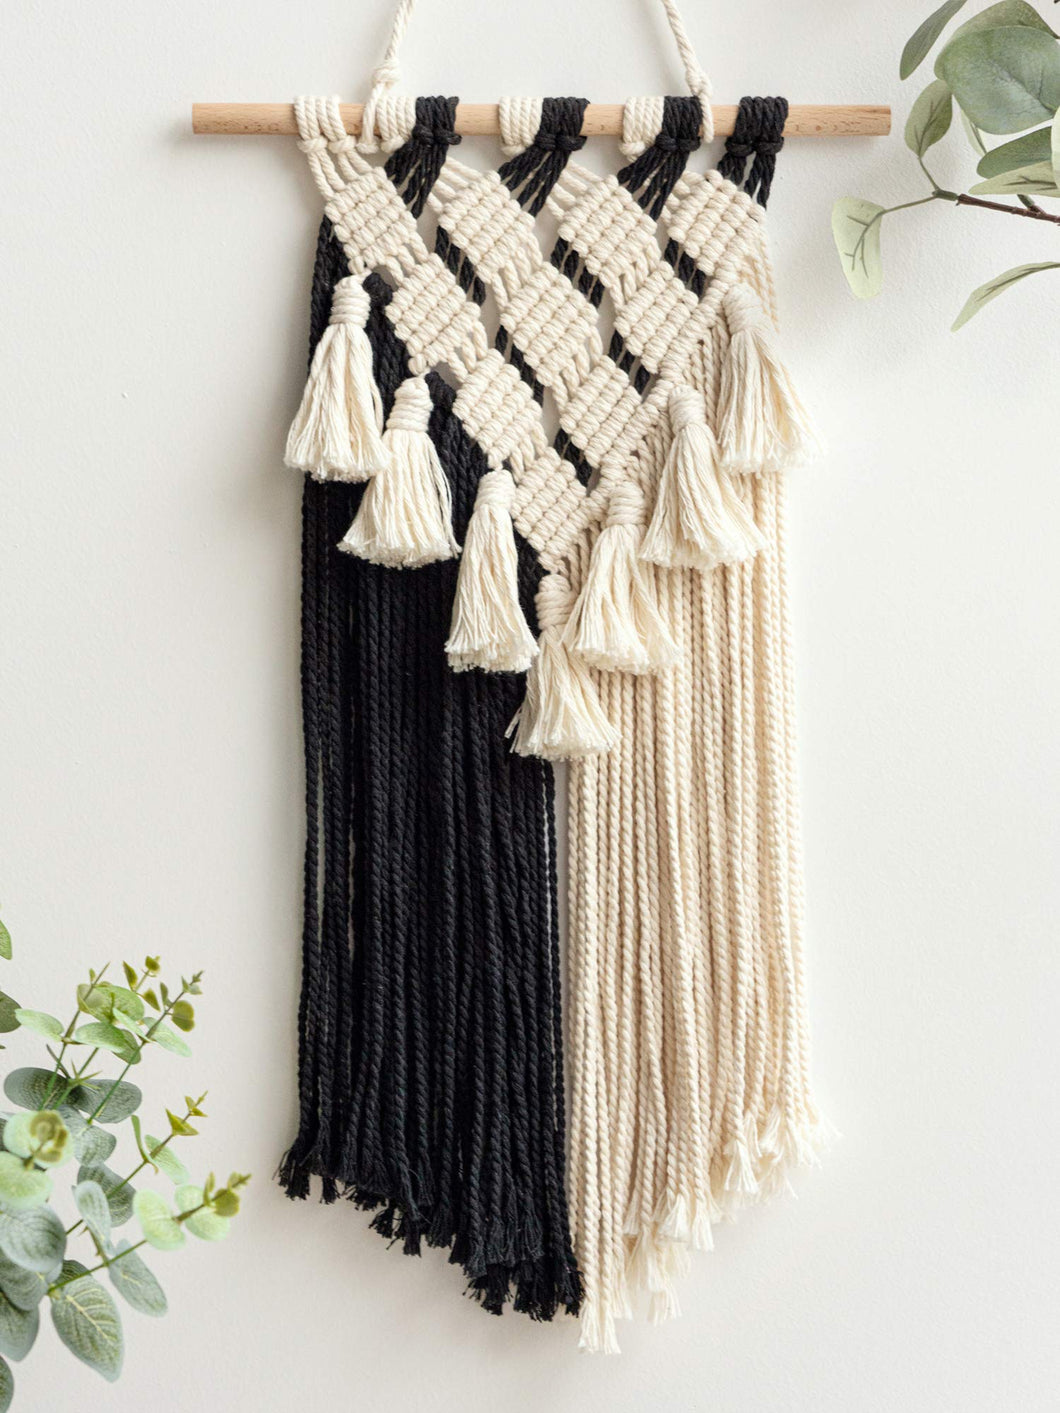 Macrame Black and White Wall Art